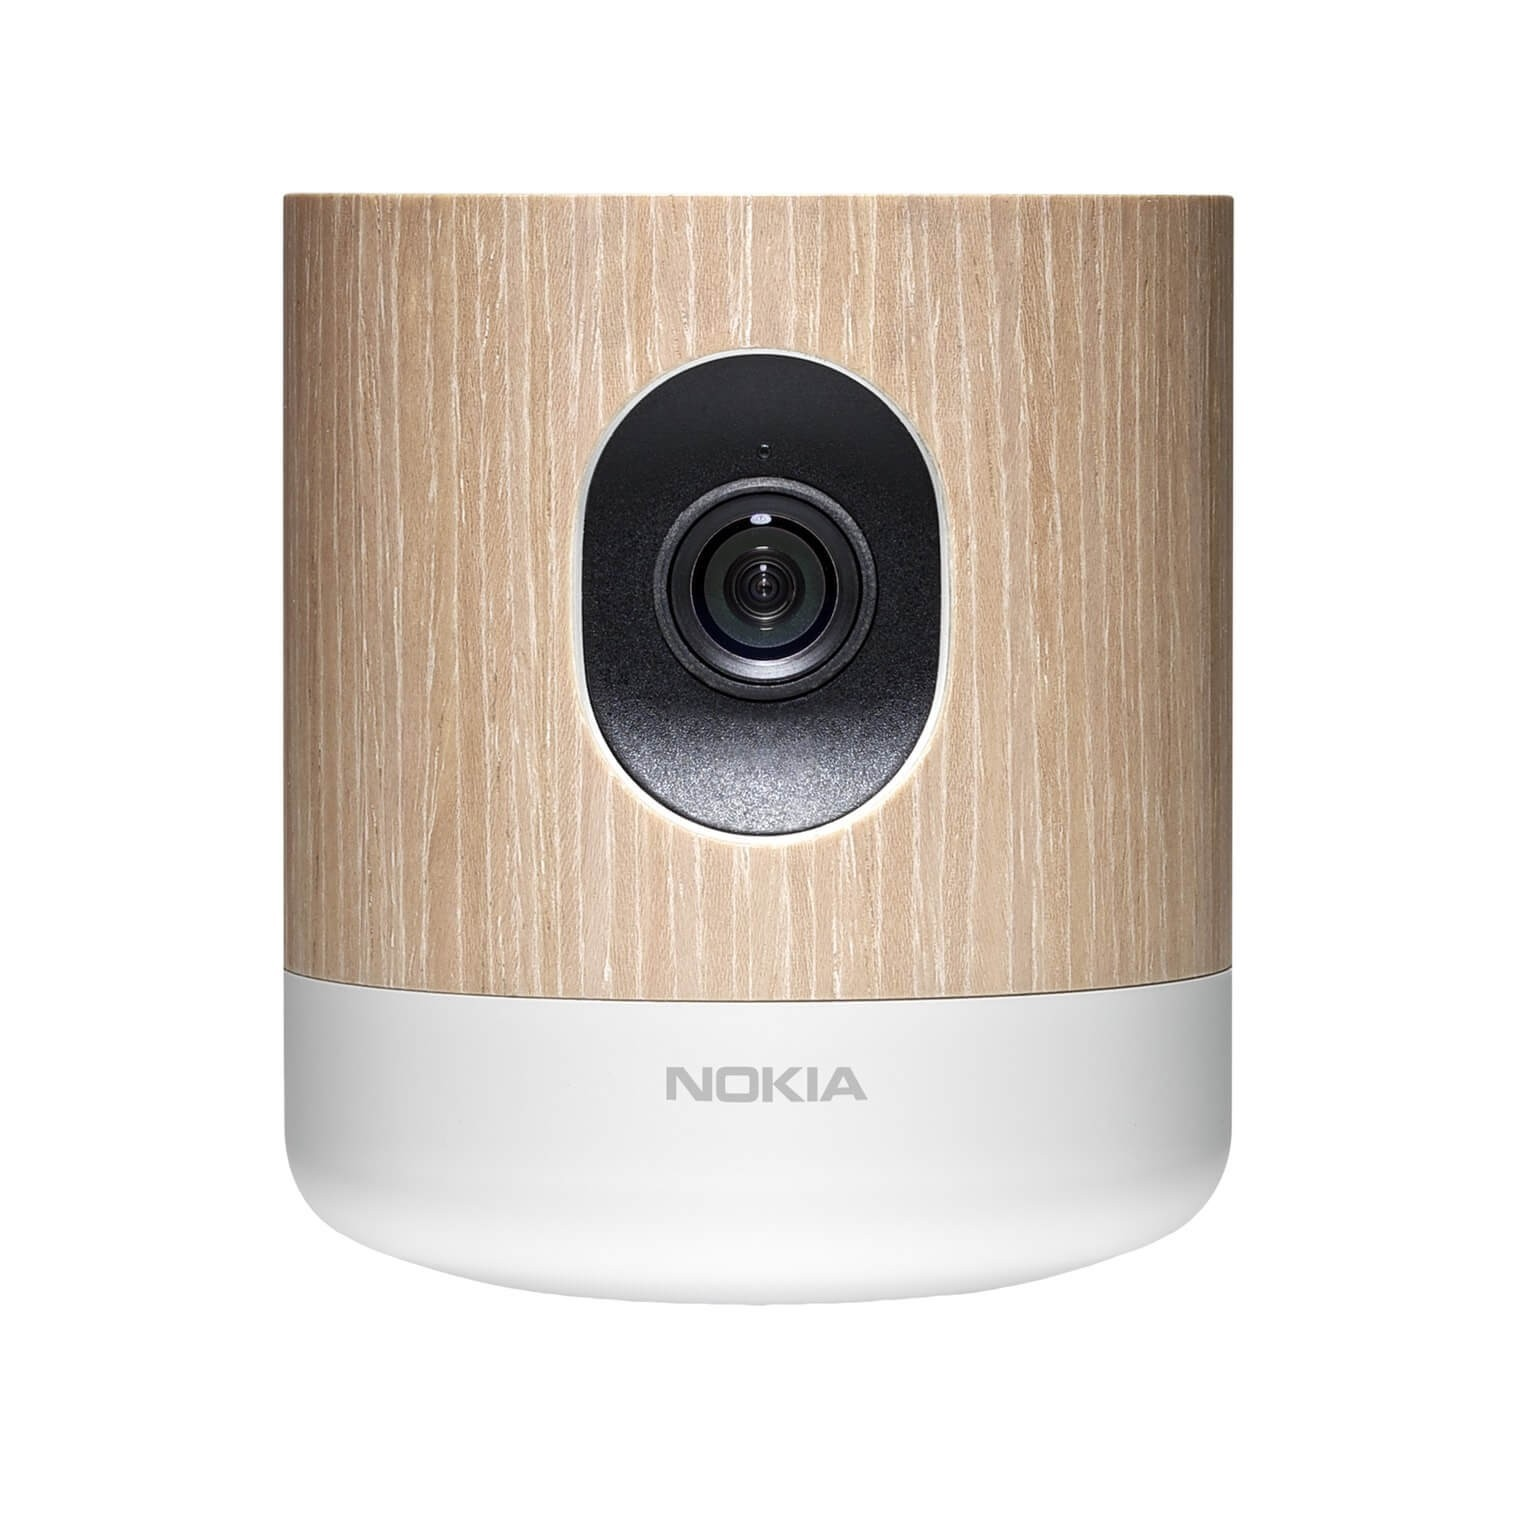 Wonderlijk Nokia (Withings) Home HD camera (babyfoon) BF-45